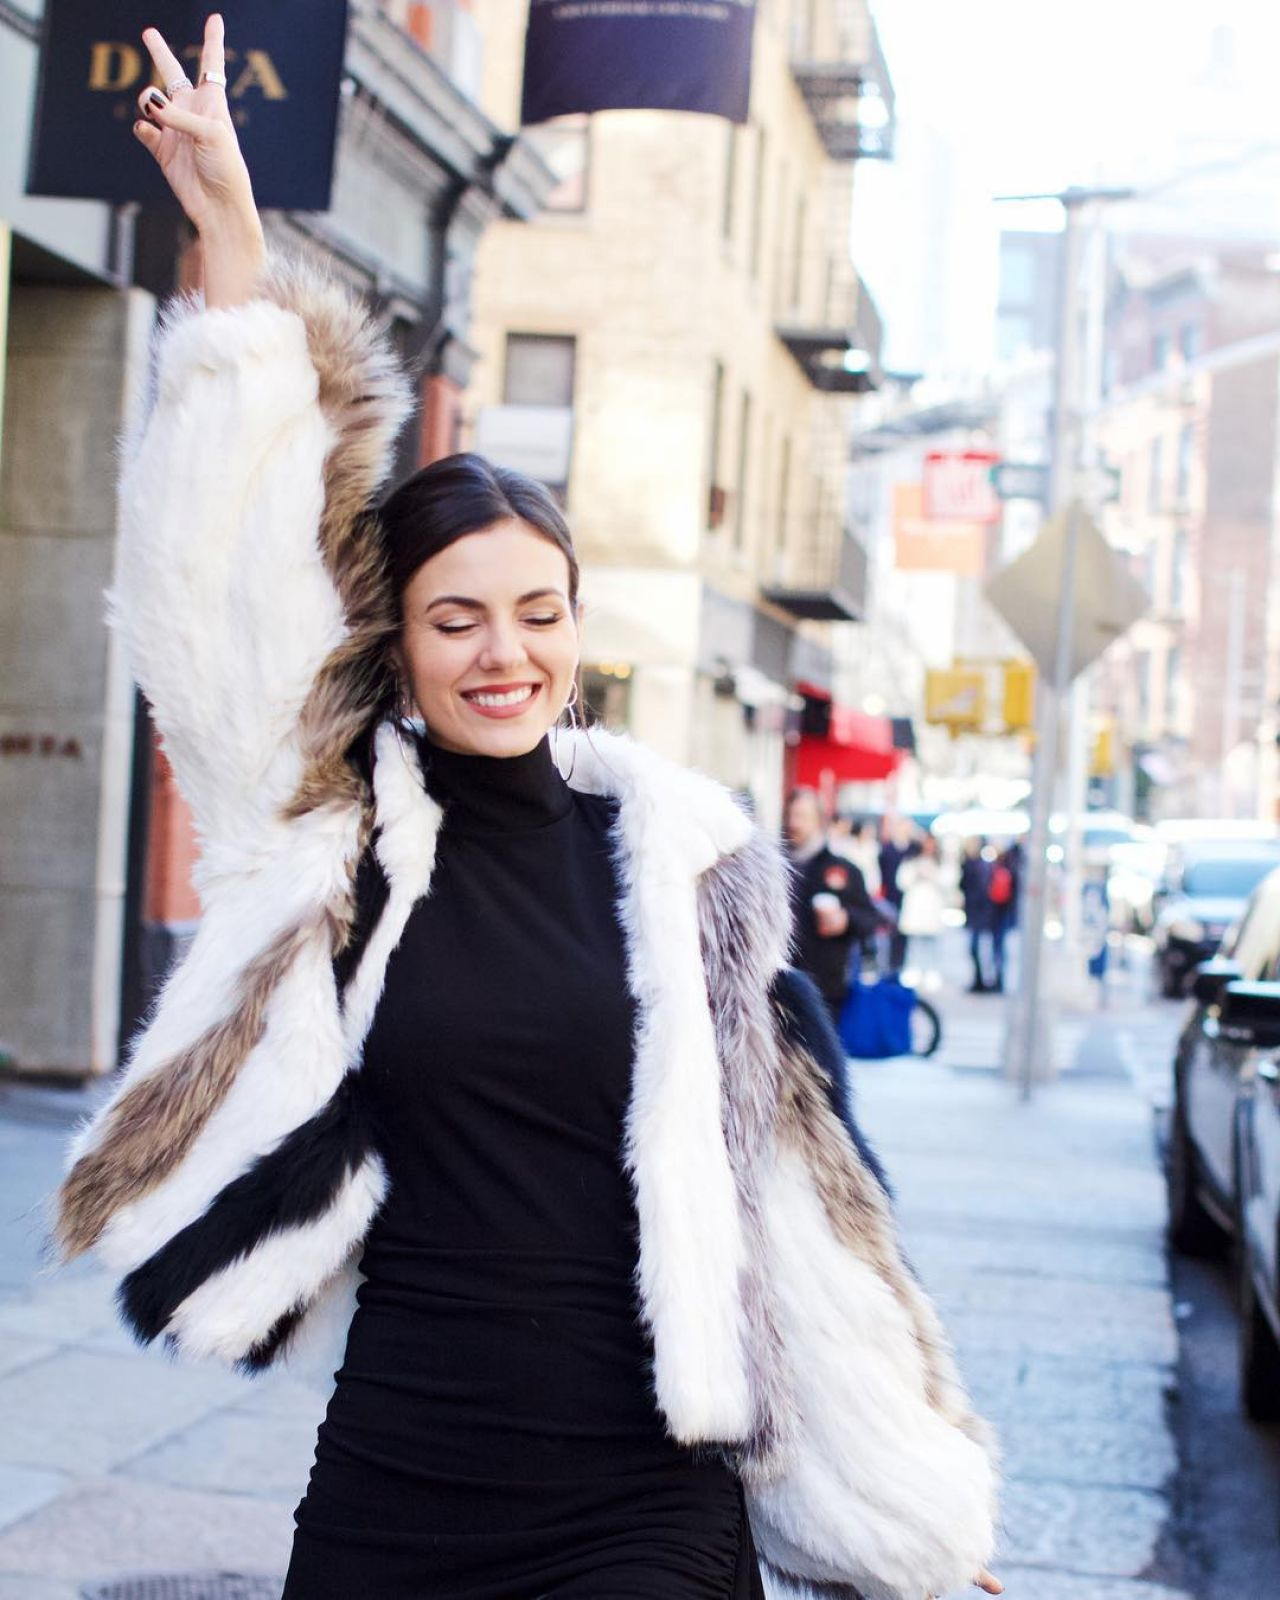 Victoria Justice - Photoshoot in New York, February 2019